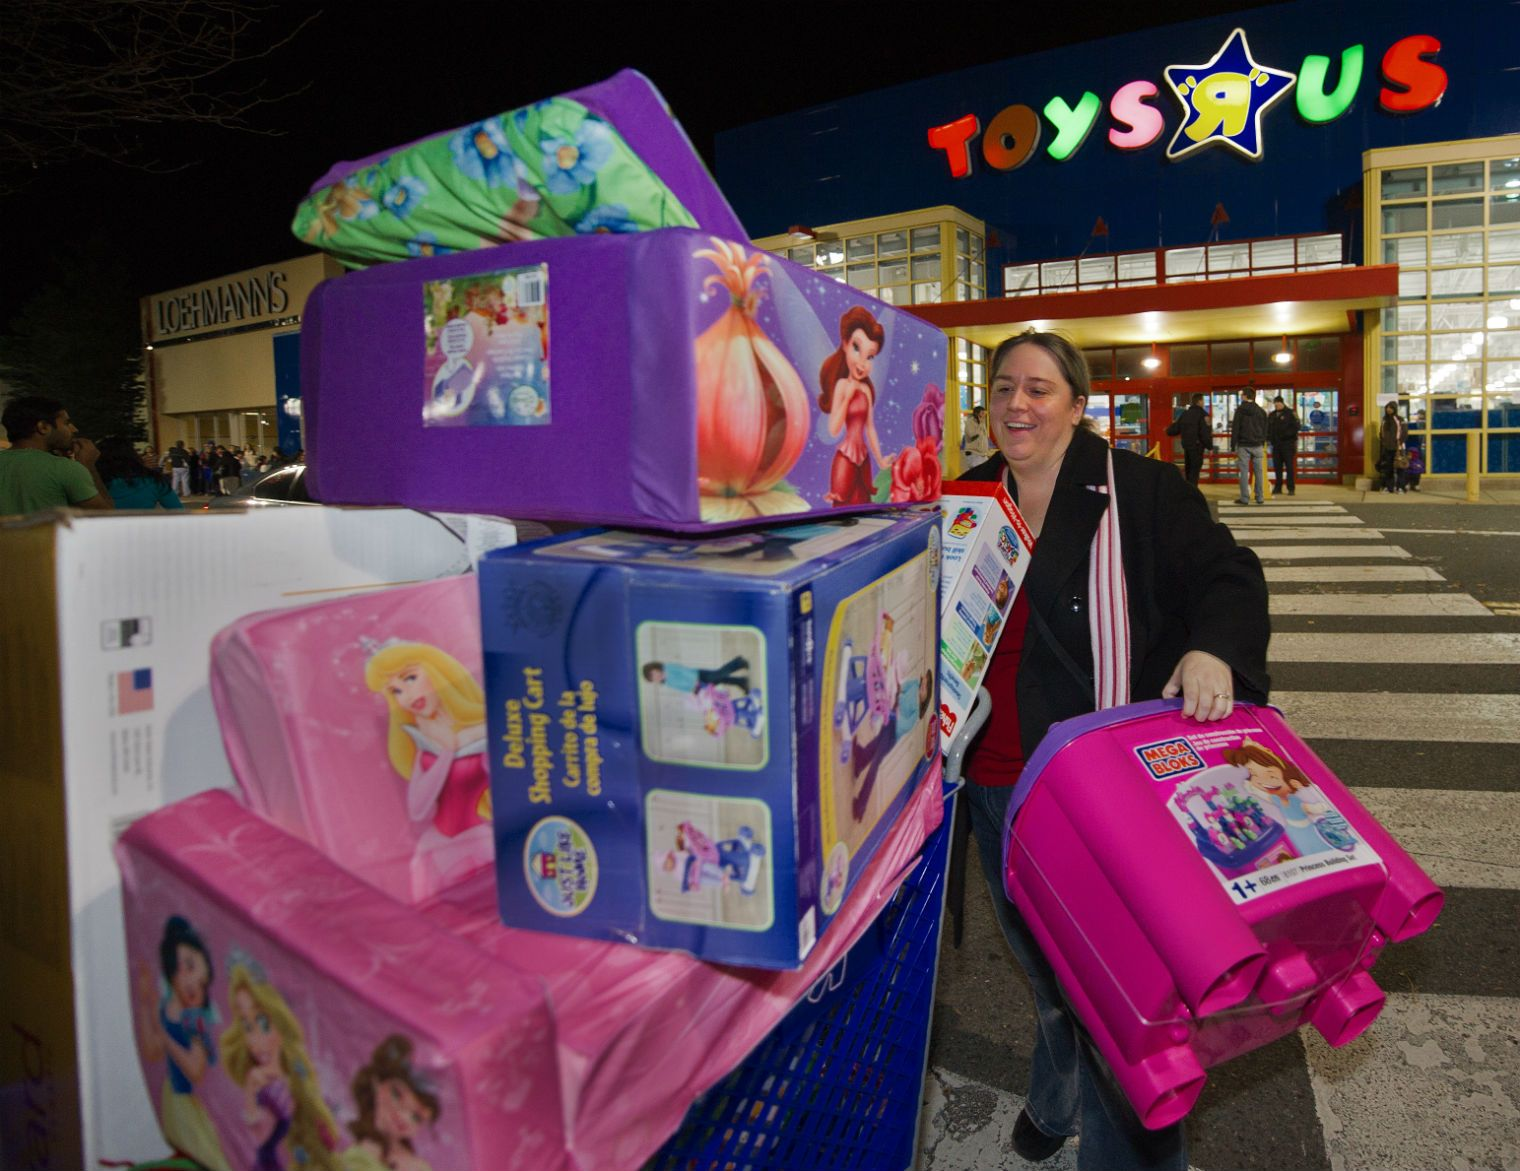 Toys R Us has stopped telling girls and boys what they should be playing with, in a victory for parents upset by gender-based marketing.